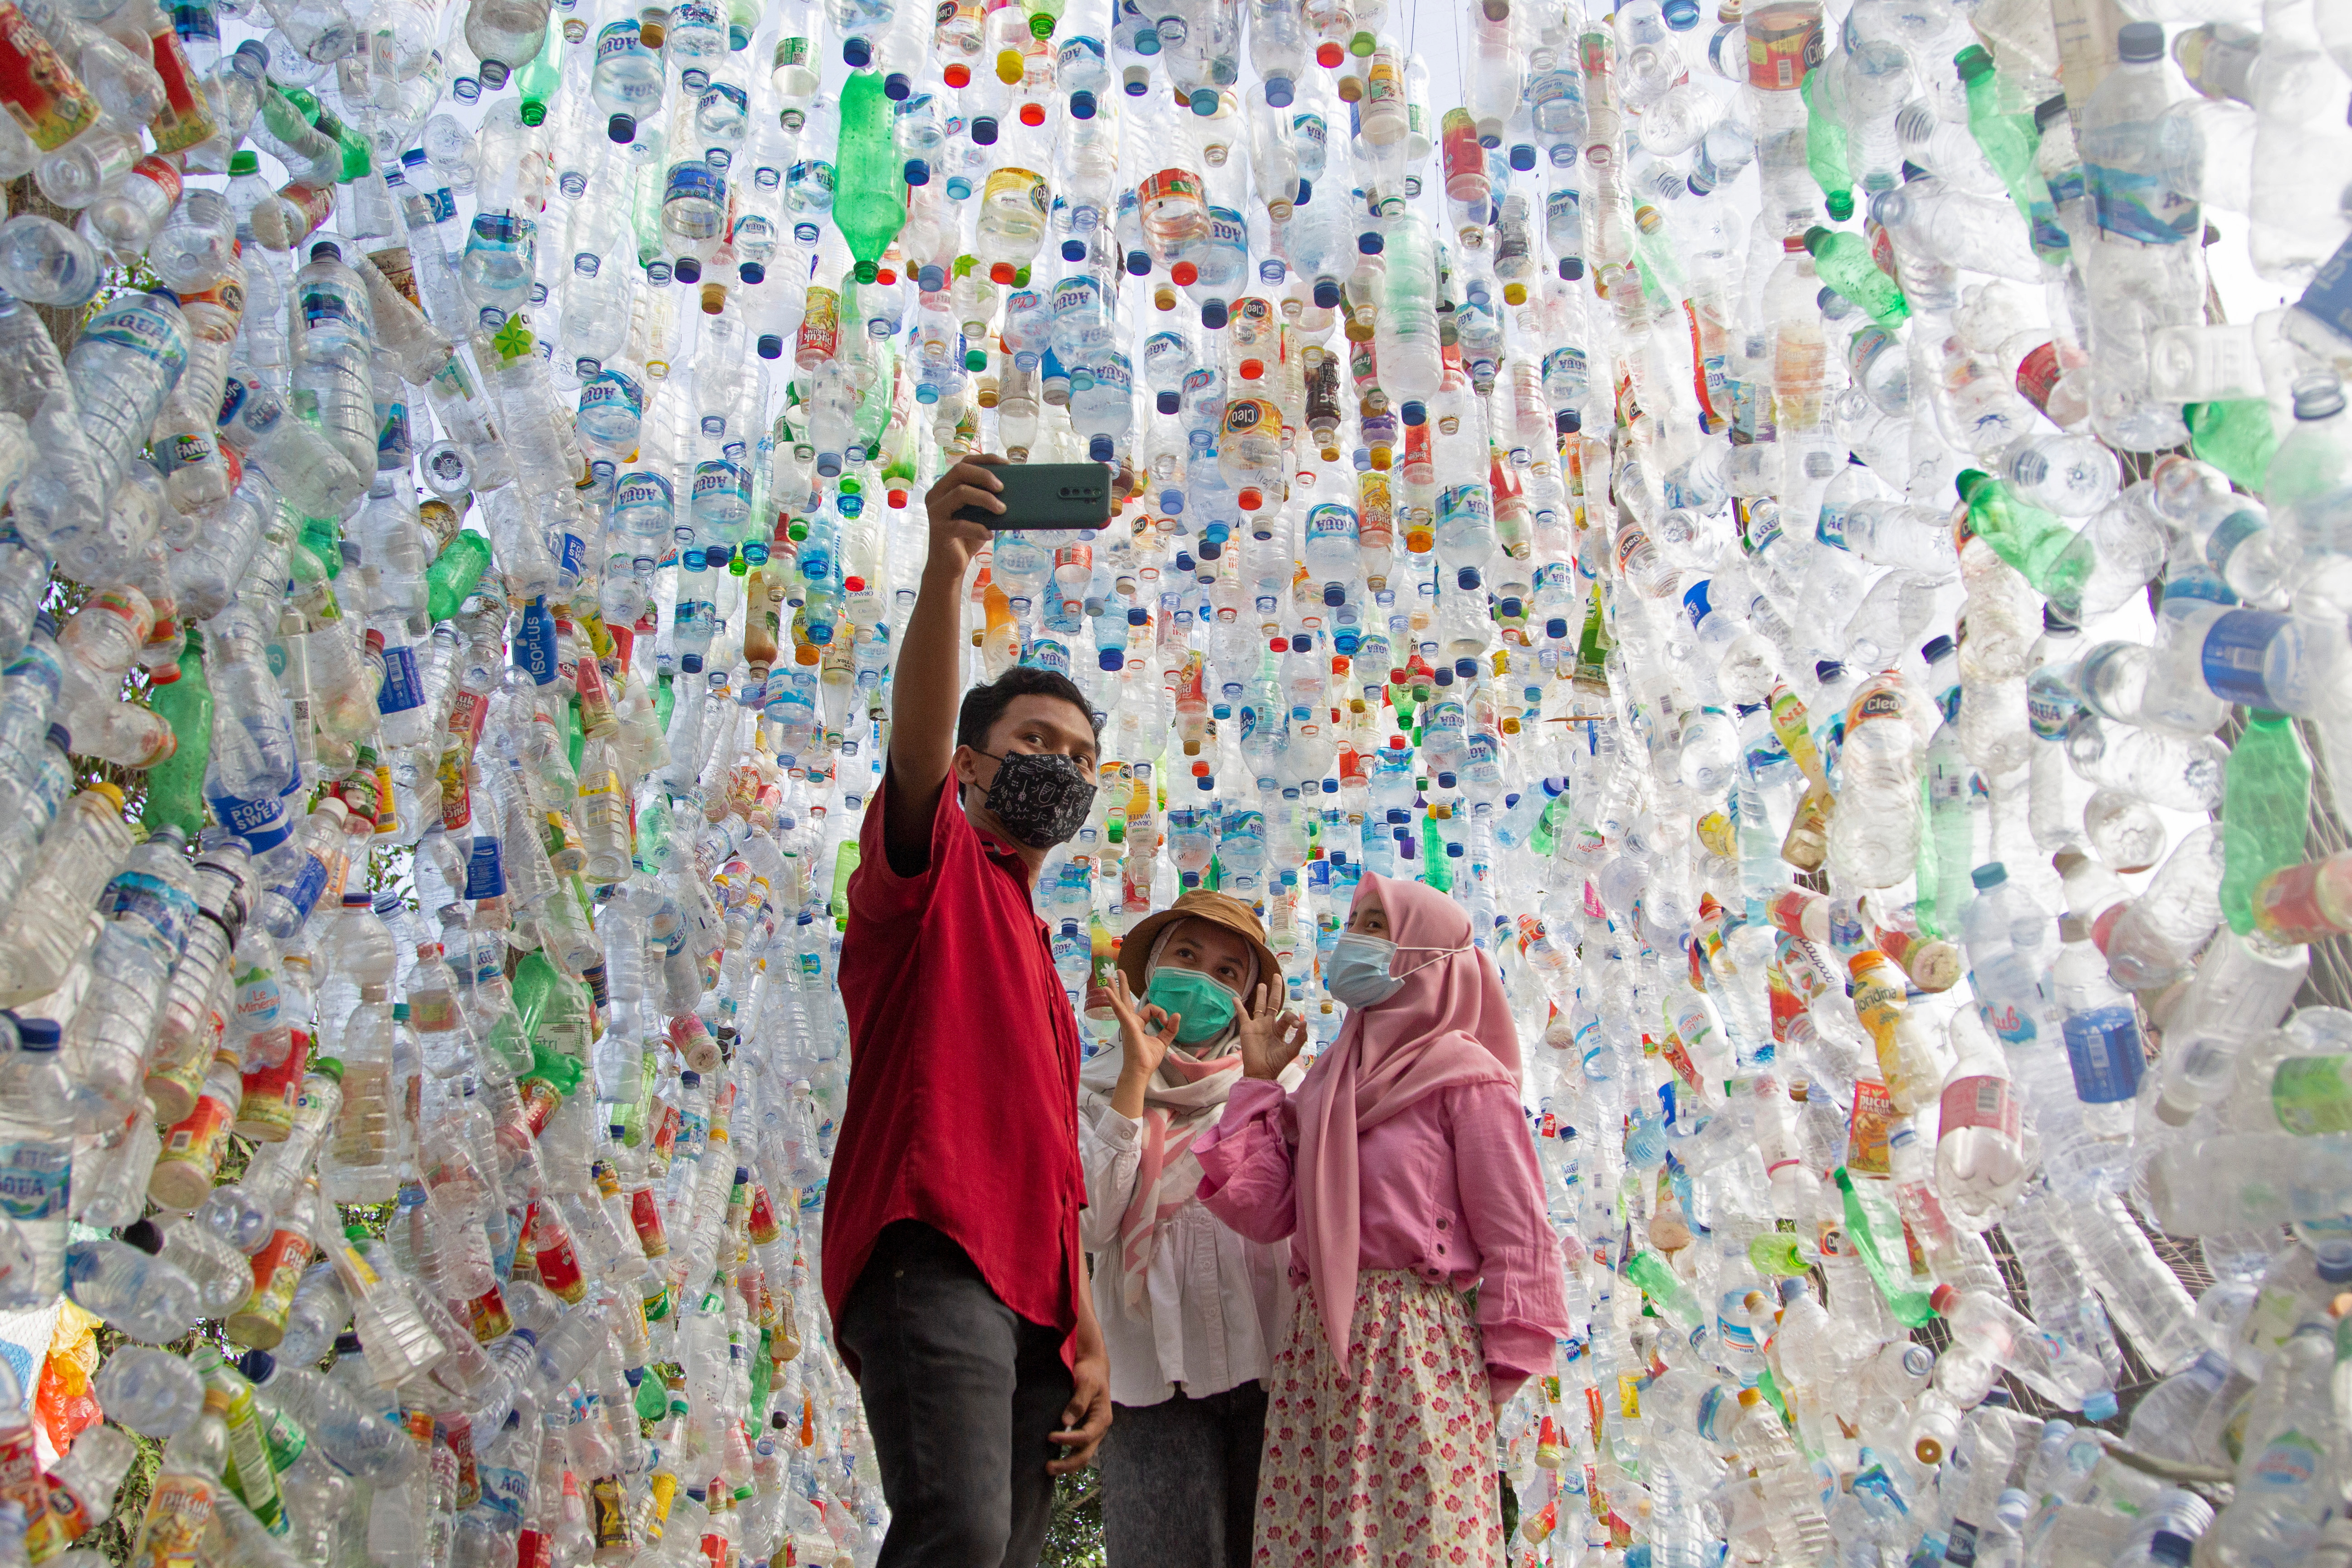 """People take selfie pictures at """"Terowongan 4444"""" or 4444 tunnel, built from plastic bottles collected from several rivers around the city in three years, at the plastic museum constructed by Indonesia's environmental activist group Ecological Observation and Wetlands Conservation (ECOTON) in Gresik regency near Surabaya, East Java province, Indonesia, September 28, 2021. Picture taken September 28, 2021. REUTERS/Prasto Wardoyo"""